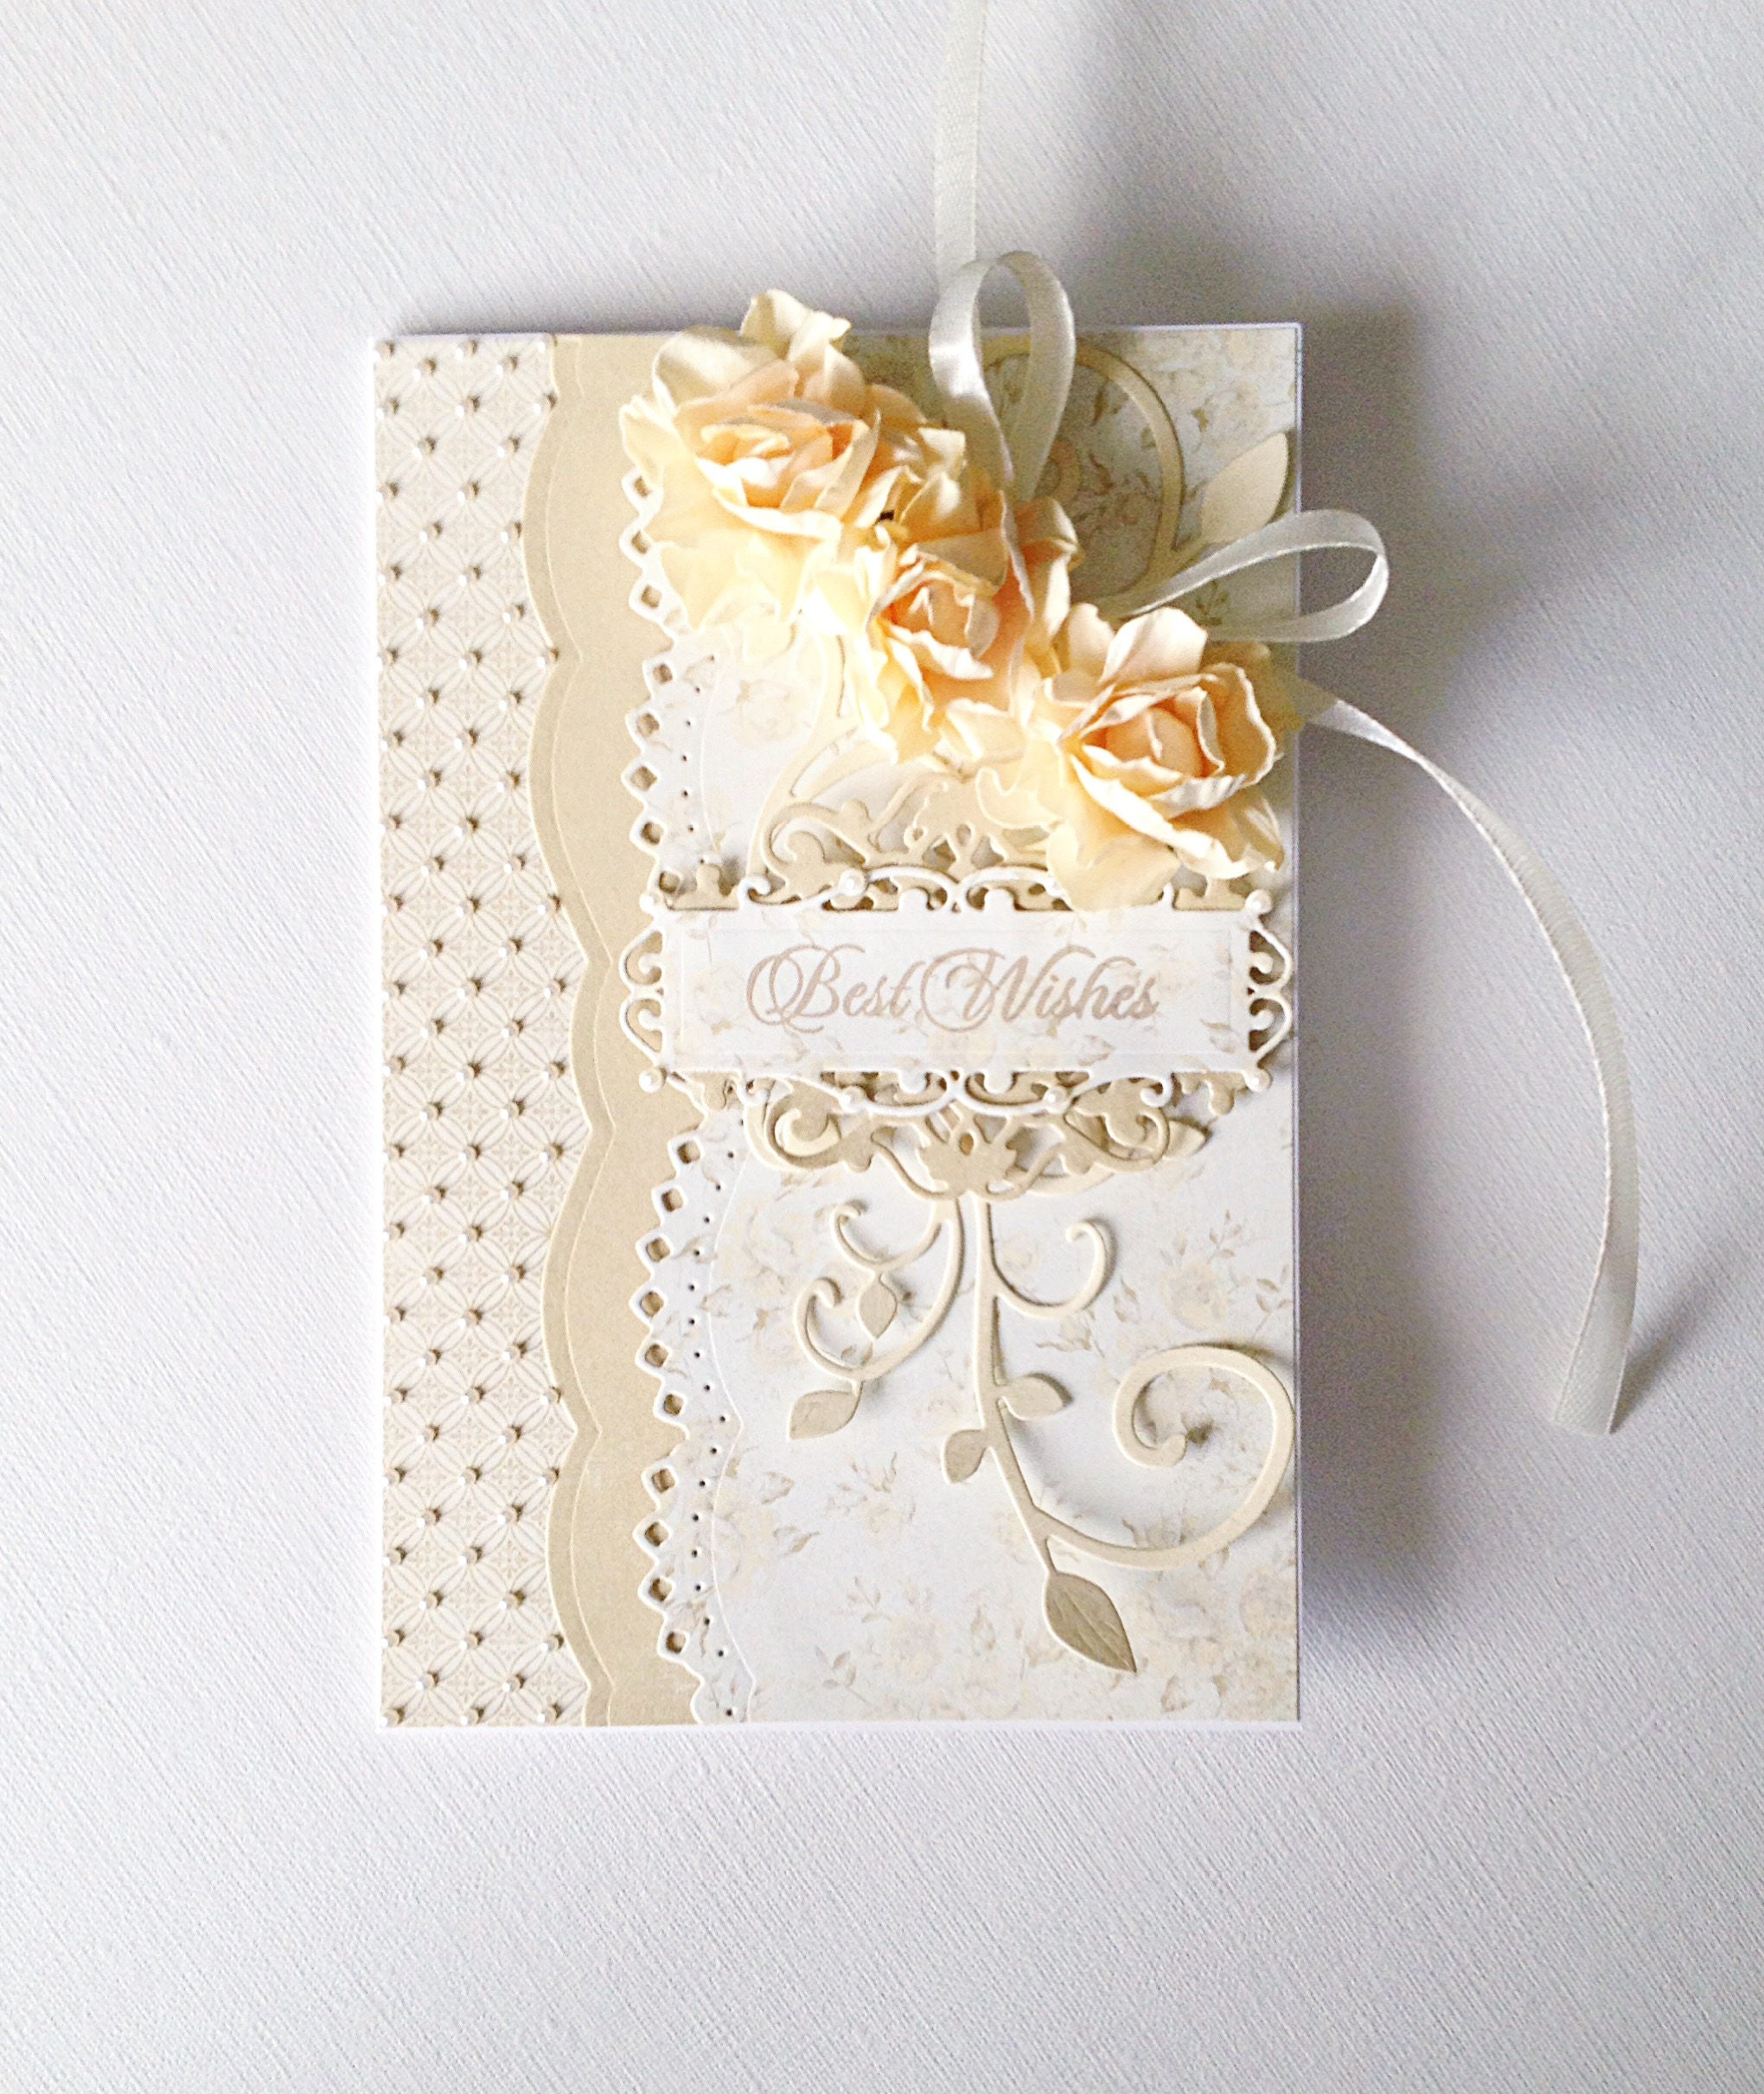 Luxury cards best wishes cards cards card keepsake card luxury cards best wishes cards cards card keepsake card personalised card kristyandbryce Images